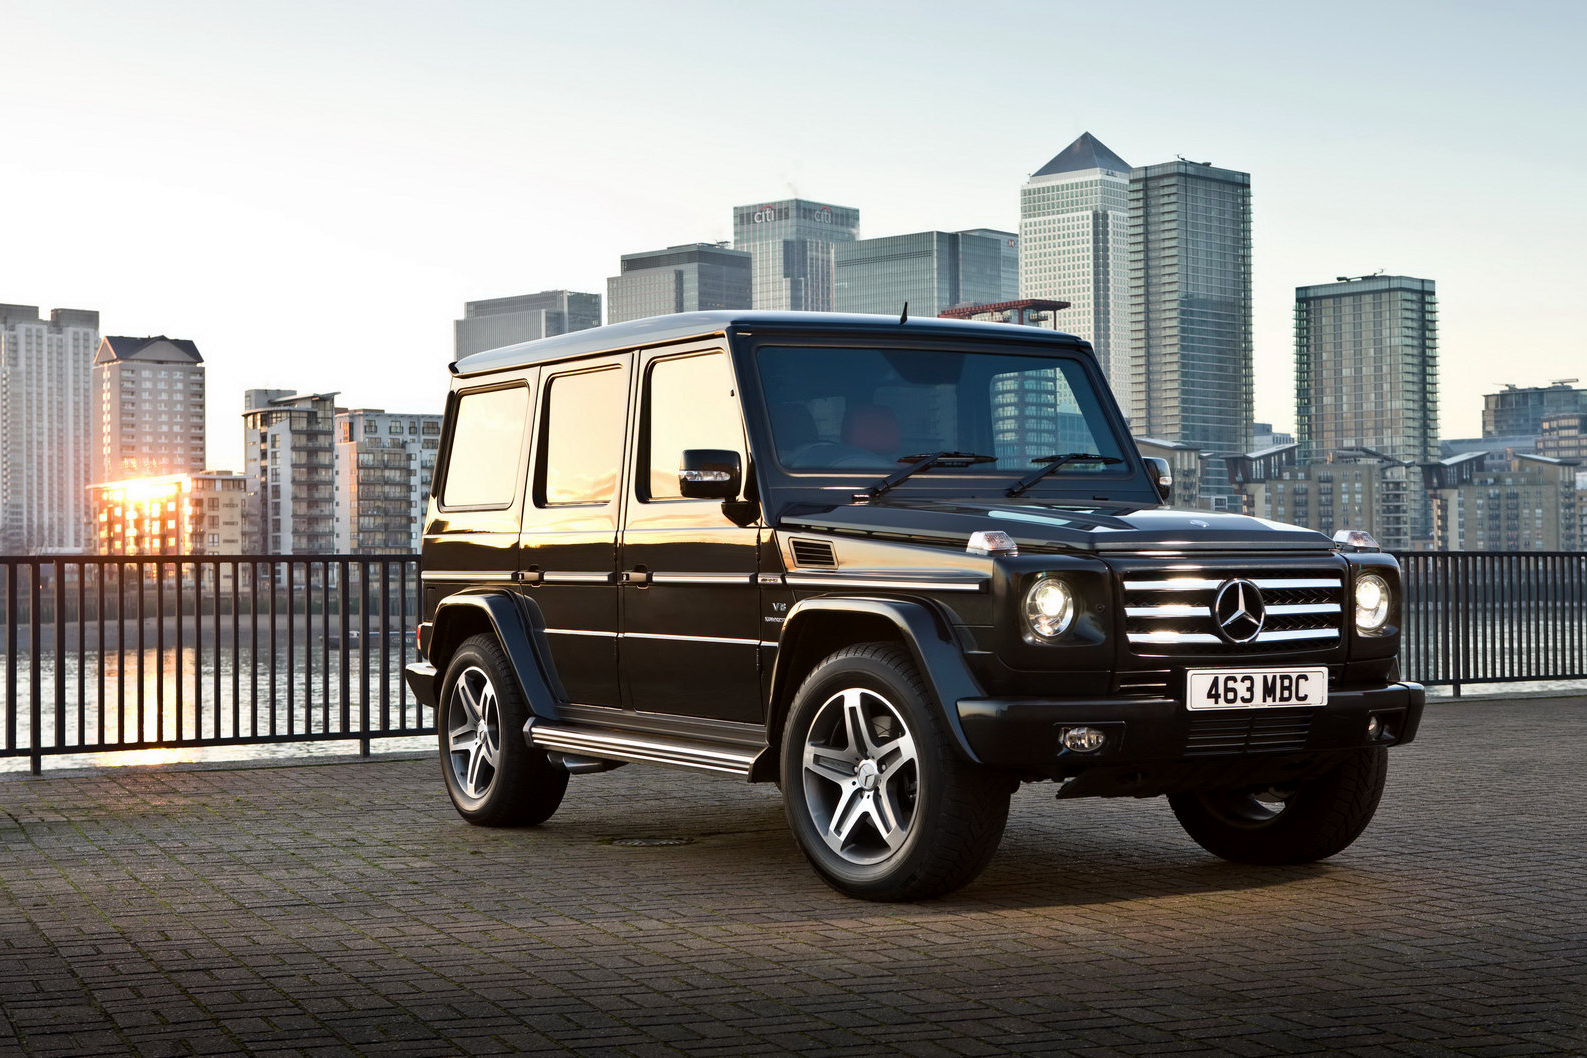 mercedes benz g55 amg suv india launch on valentines day. Black Bedroom Furniture Sets. Home Design Ideas